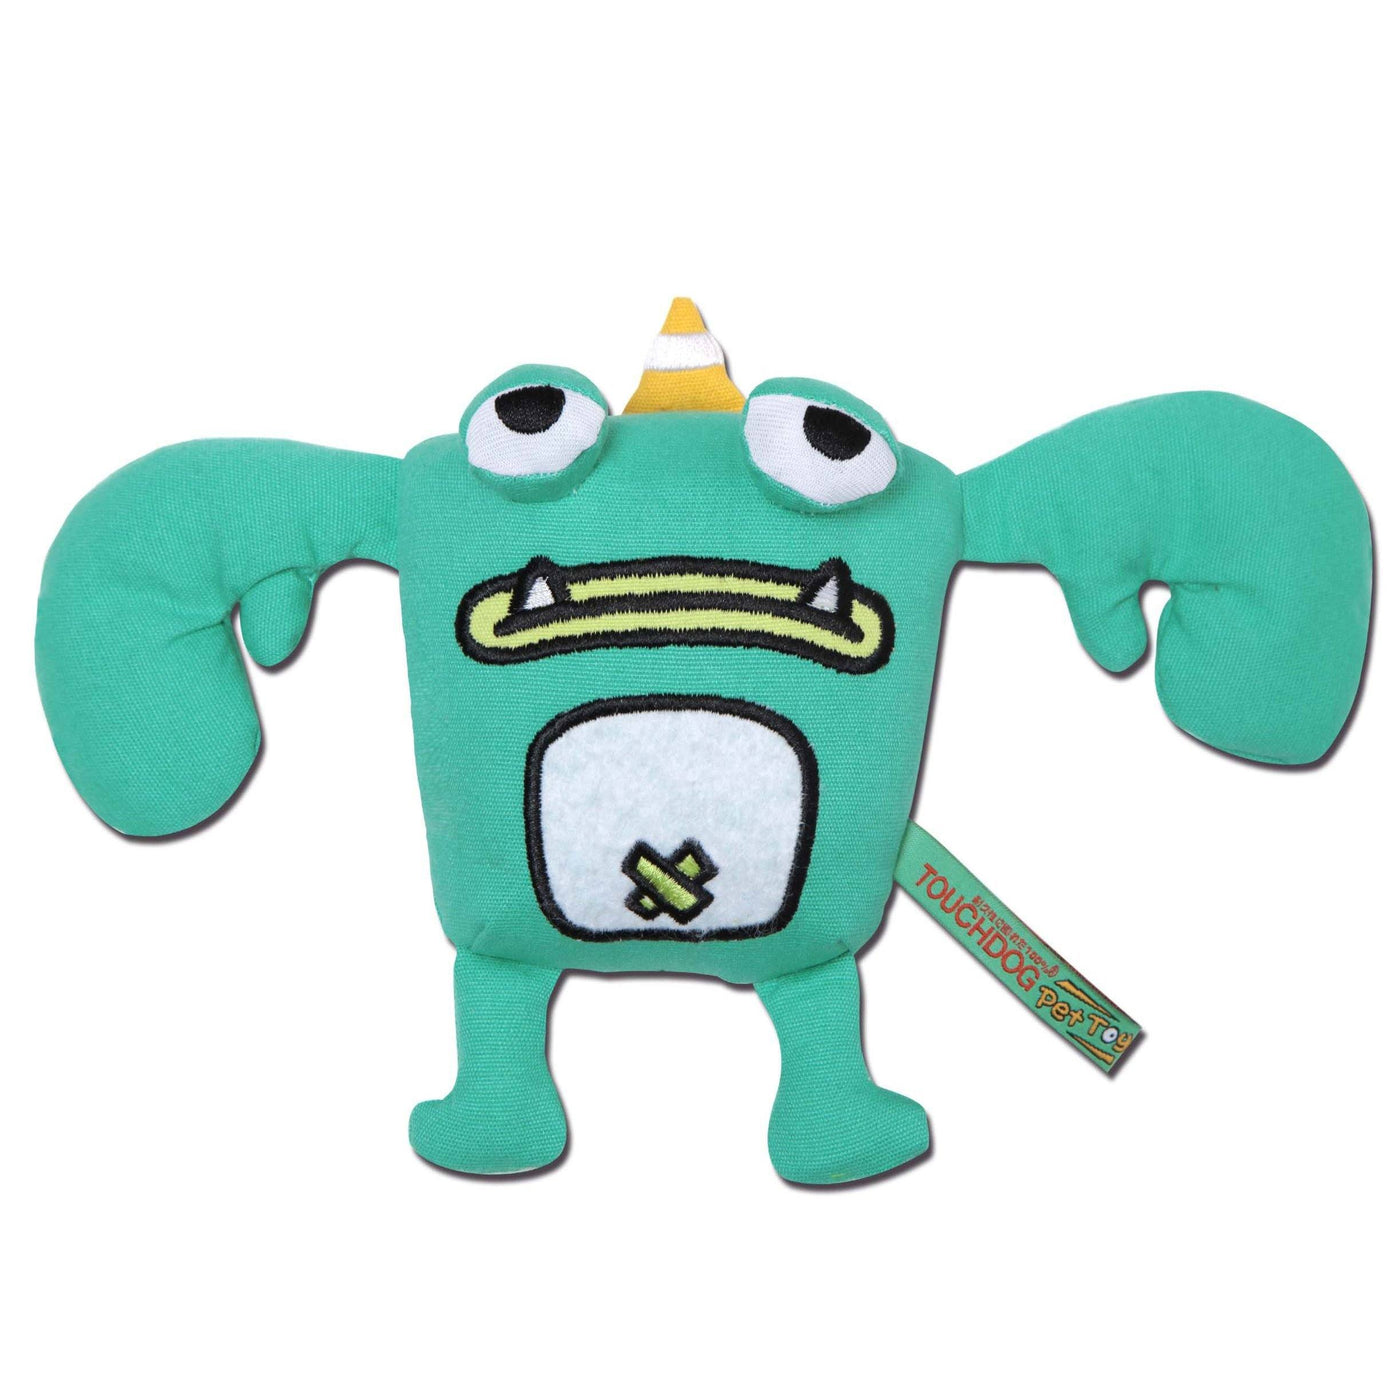 Tooth monster plush dog toy